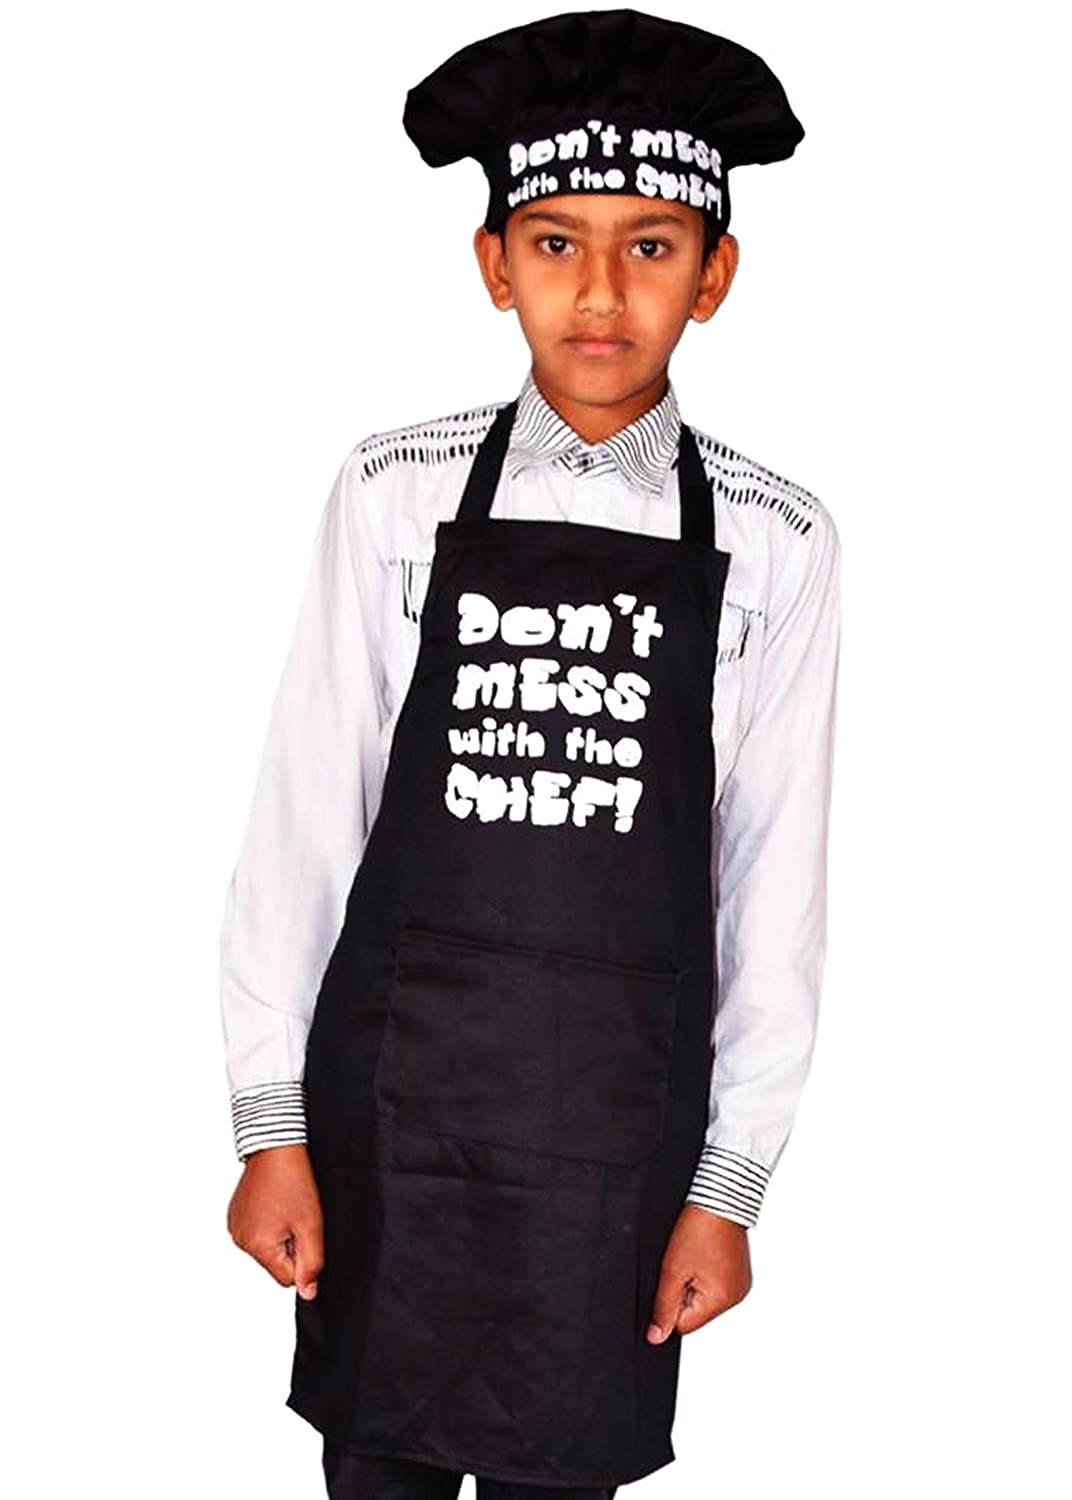 Sterling Smart® Kids Don'T Mess with The Chef Childrens Apron & Hat Set NOVELTY APRON,BLACK, COOKING APRON,BAKEWARE APRON,BBQ APRON Sterling Sports®